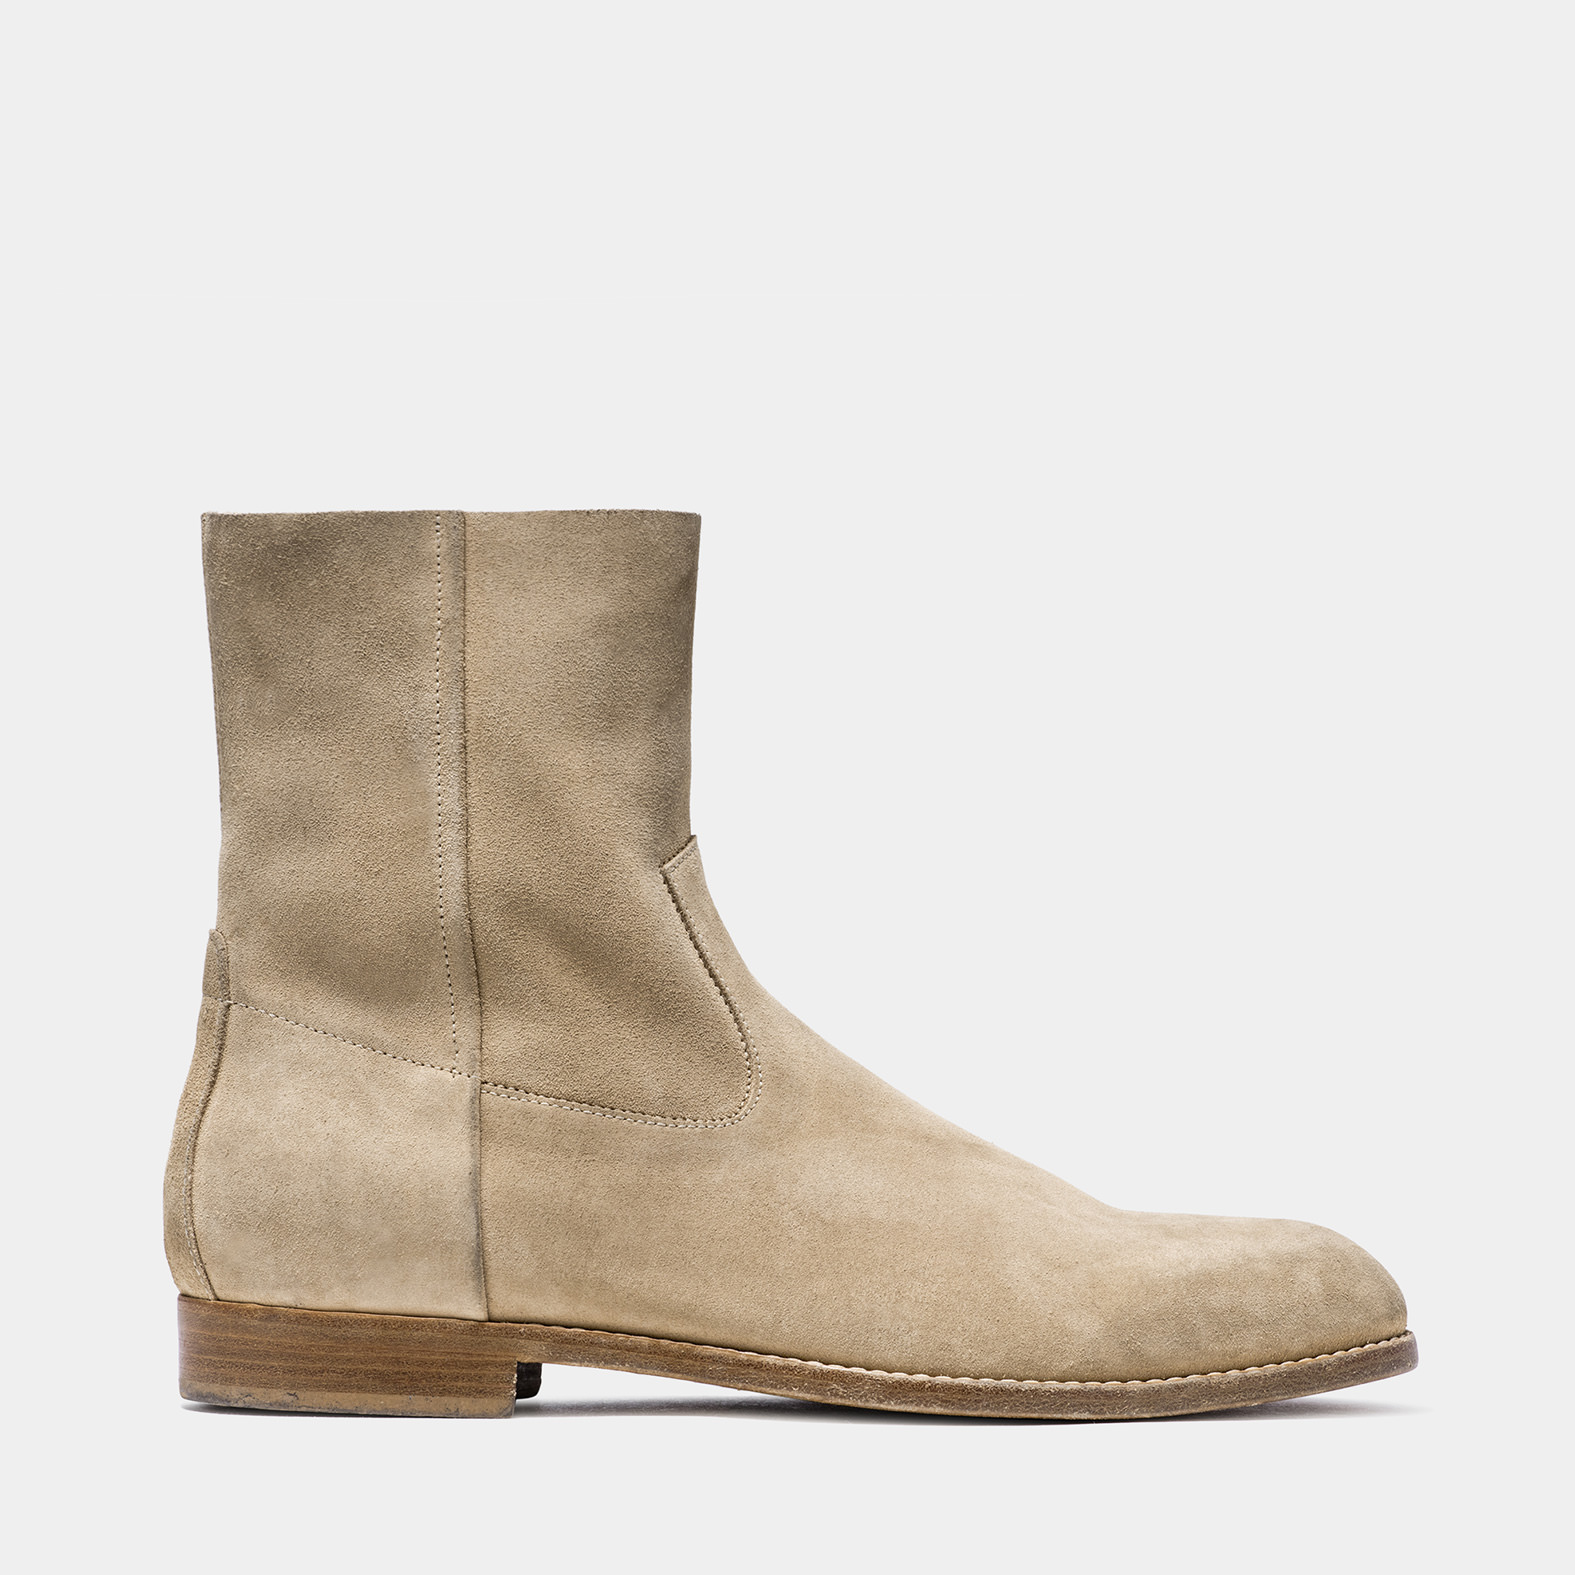 BUTTERO: CAPPUCCINO SUEDE FLOYD ANKLE BOOTS